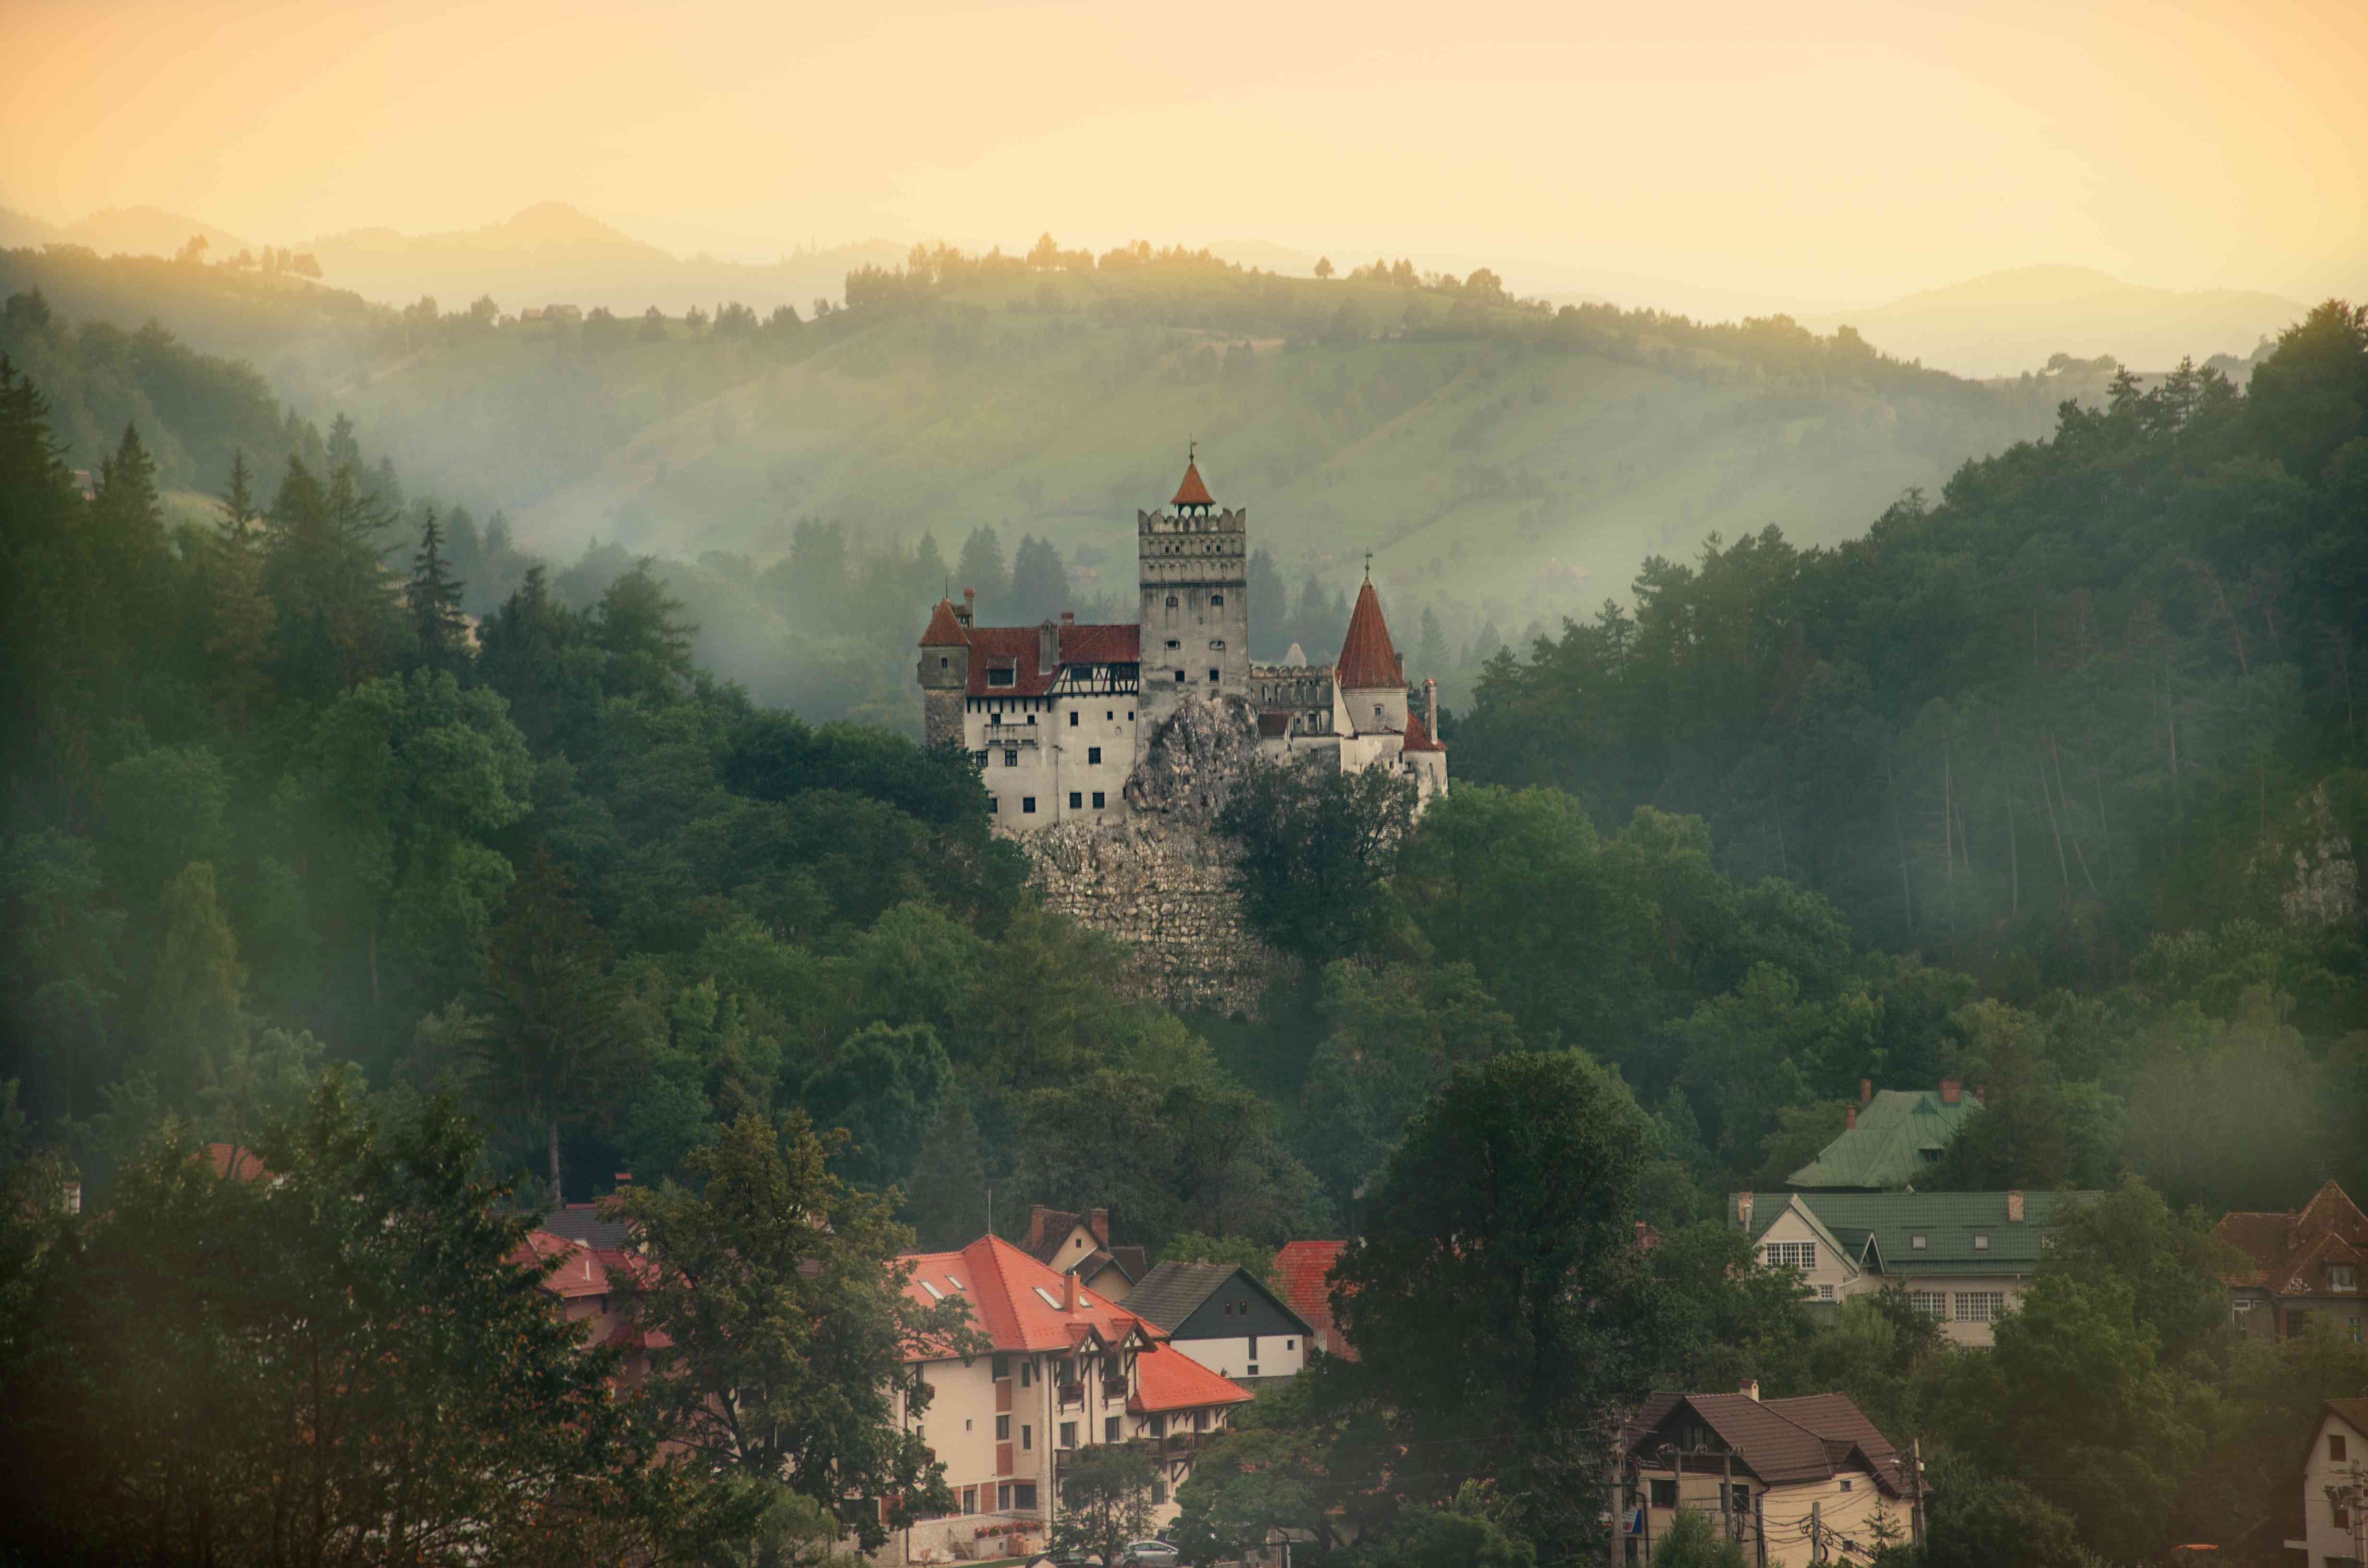 medieval fortress on a hilly landscape above a town on a hazy day